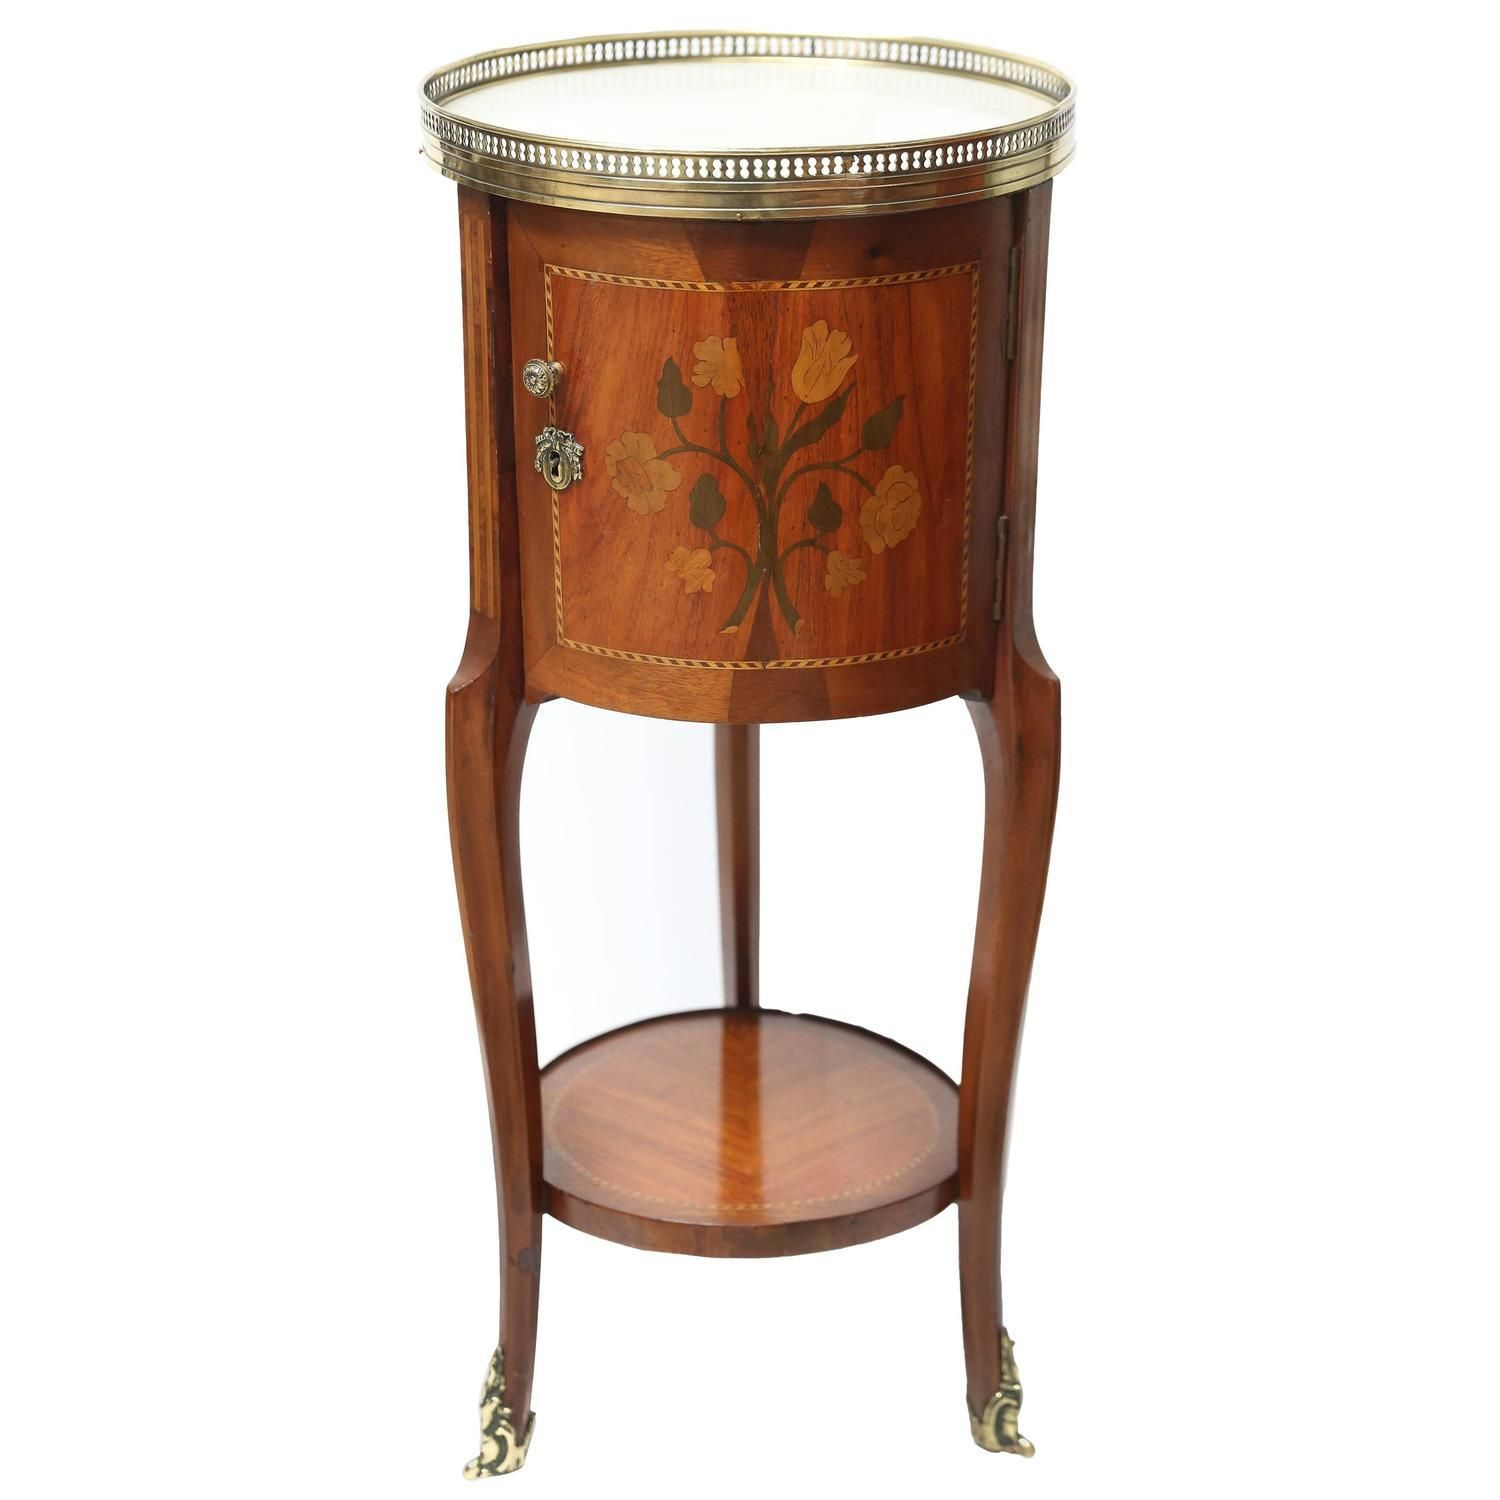 Antique French Napoleon III Period Mahogany Marble-Top End Table, circa 1870